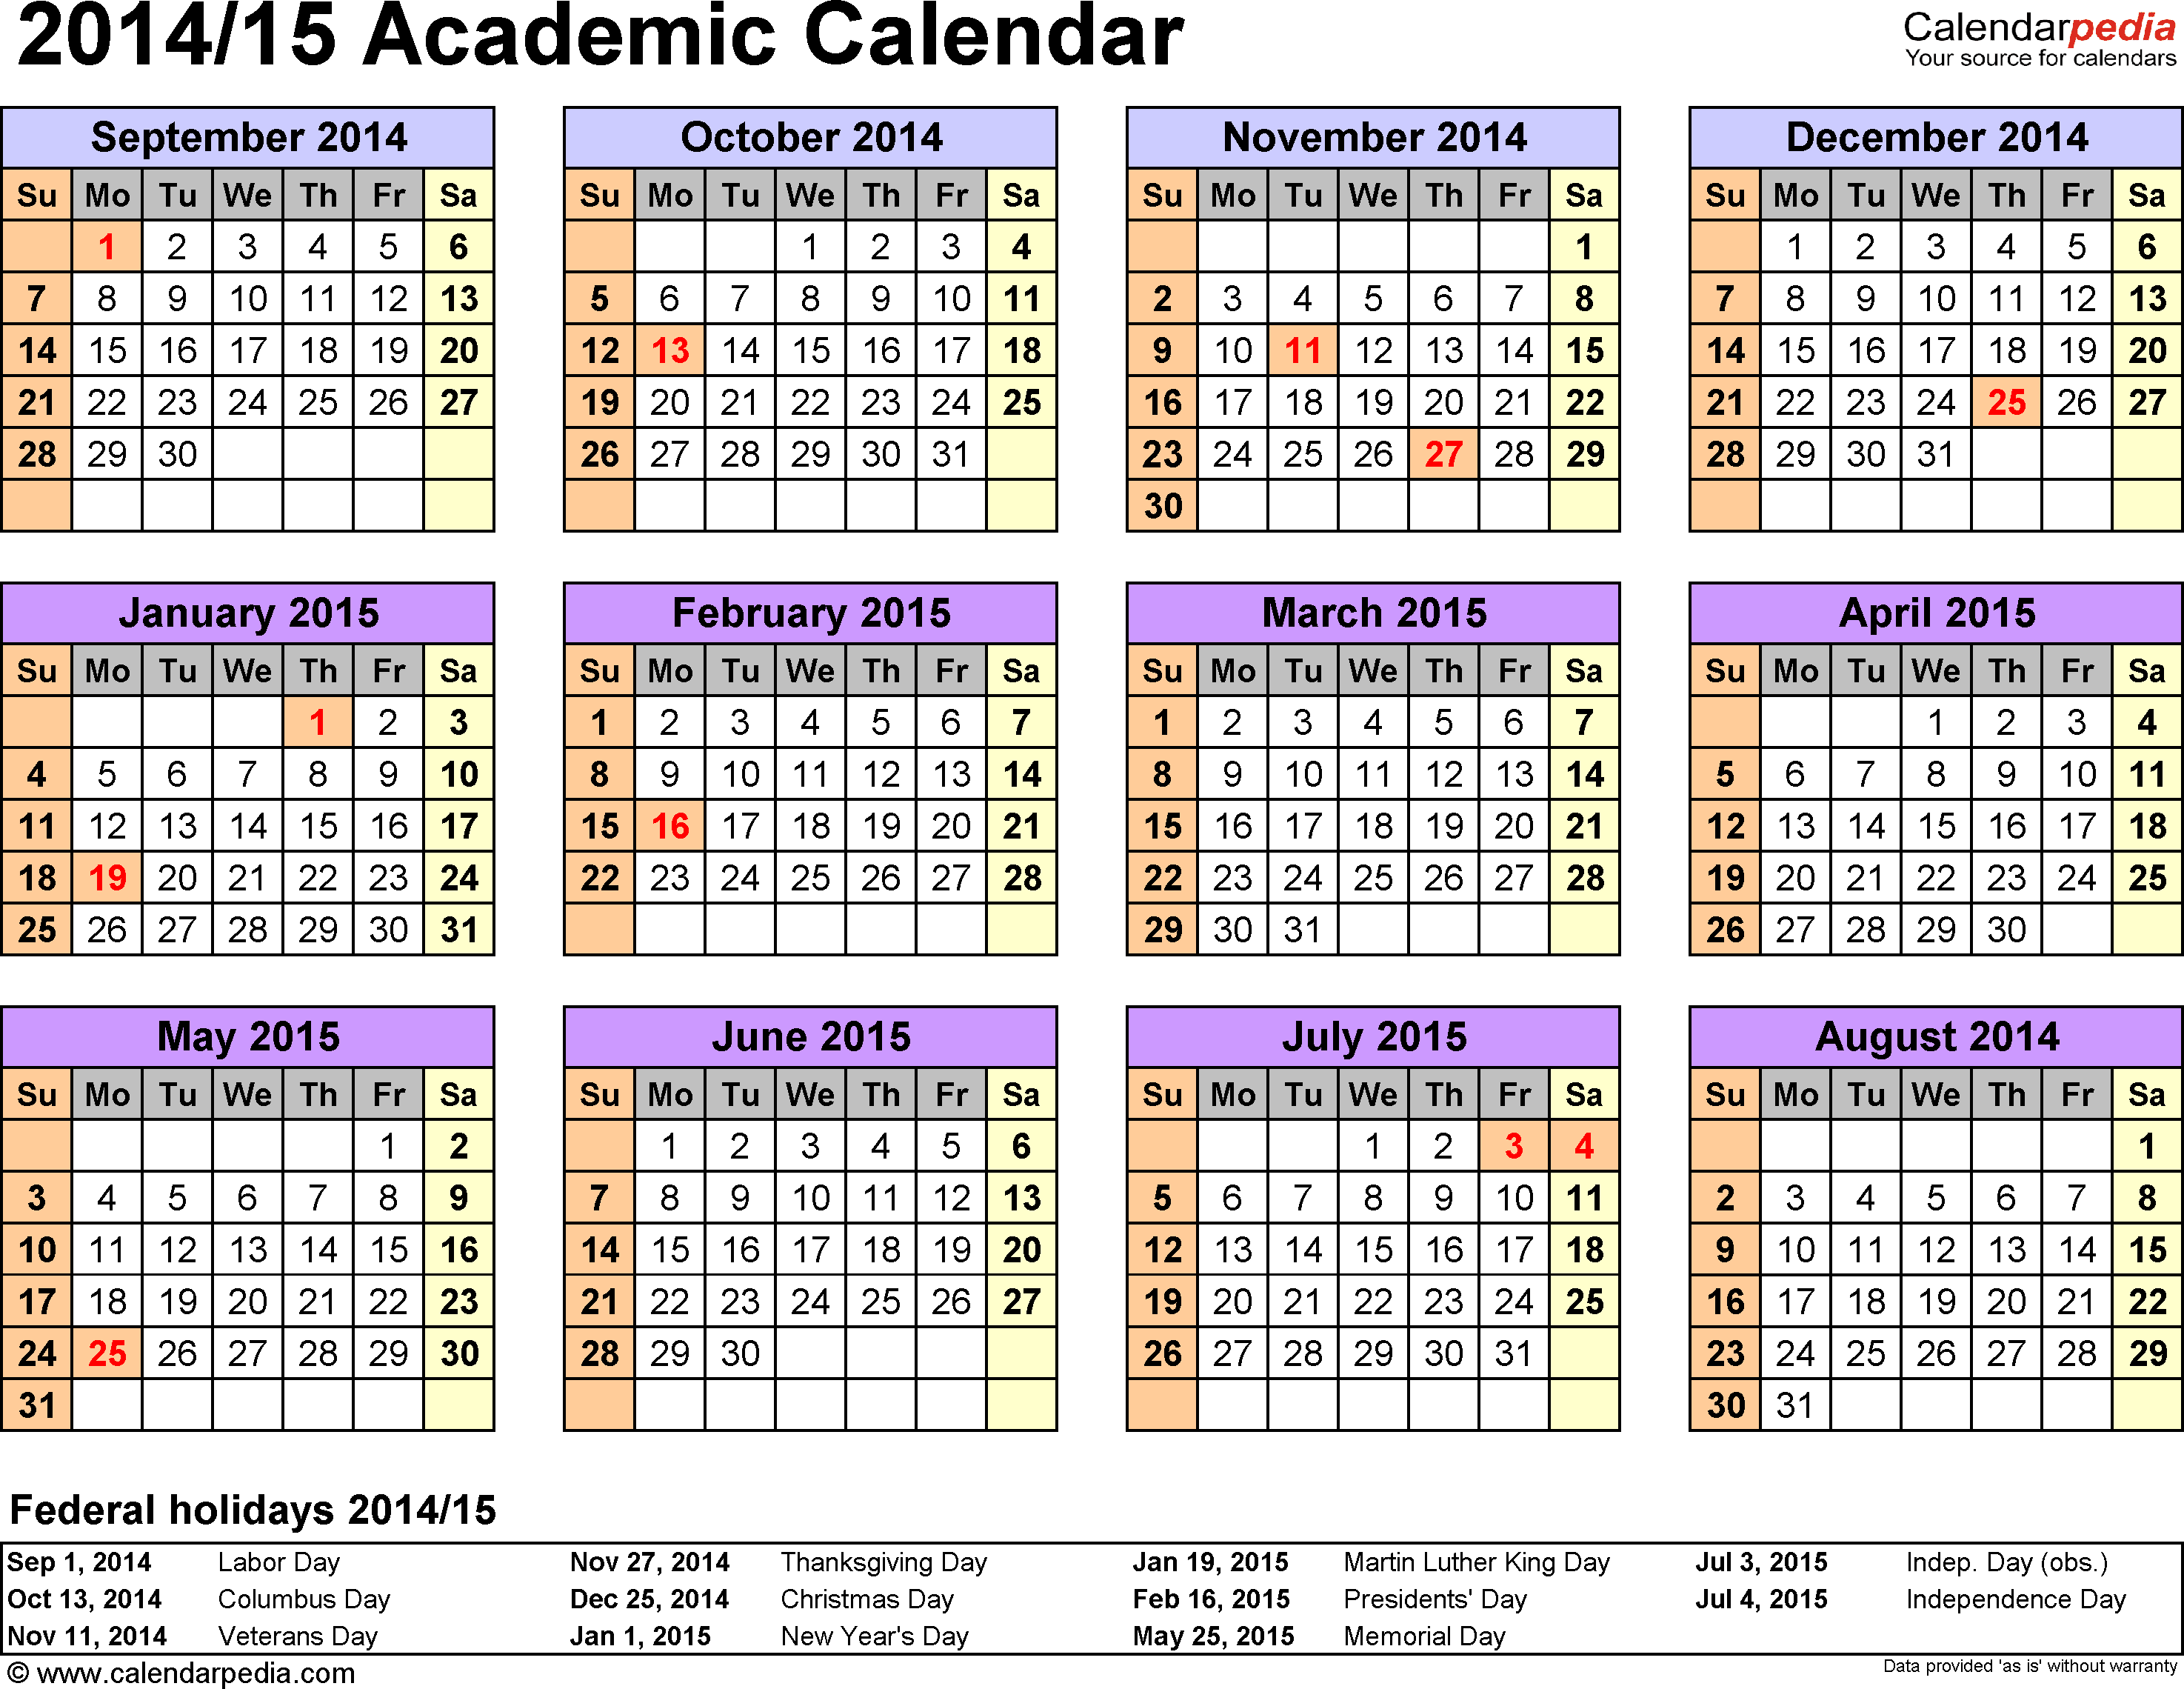 Template 3: Academic calendar 2014/15 for Word, landscape orientation, year at a glance, 1 page